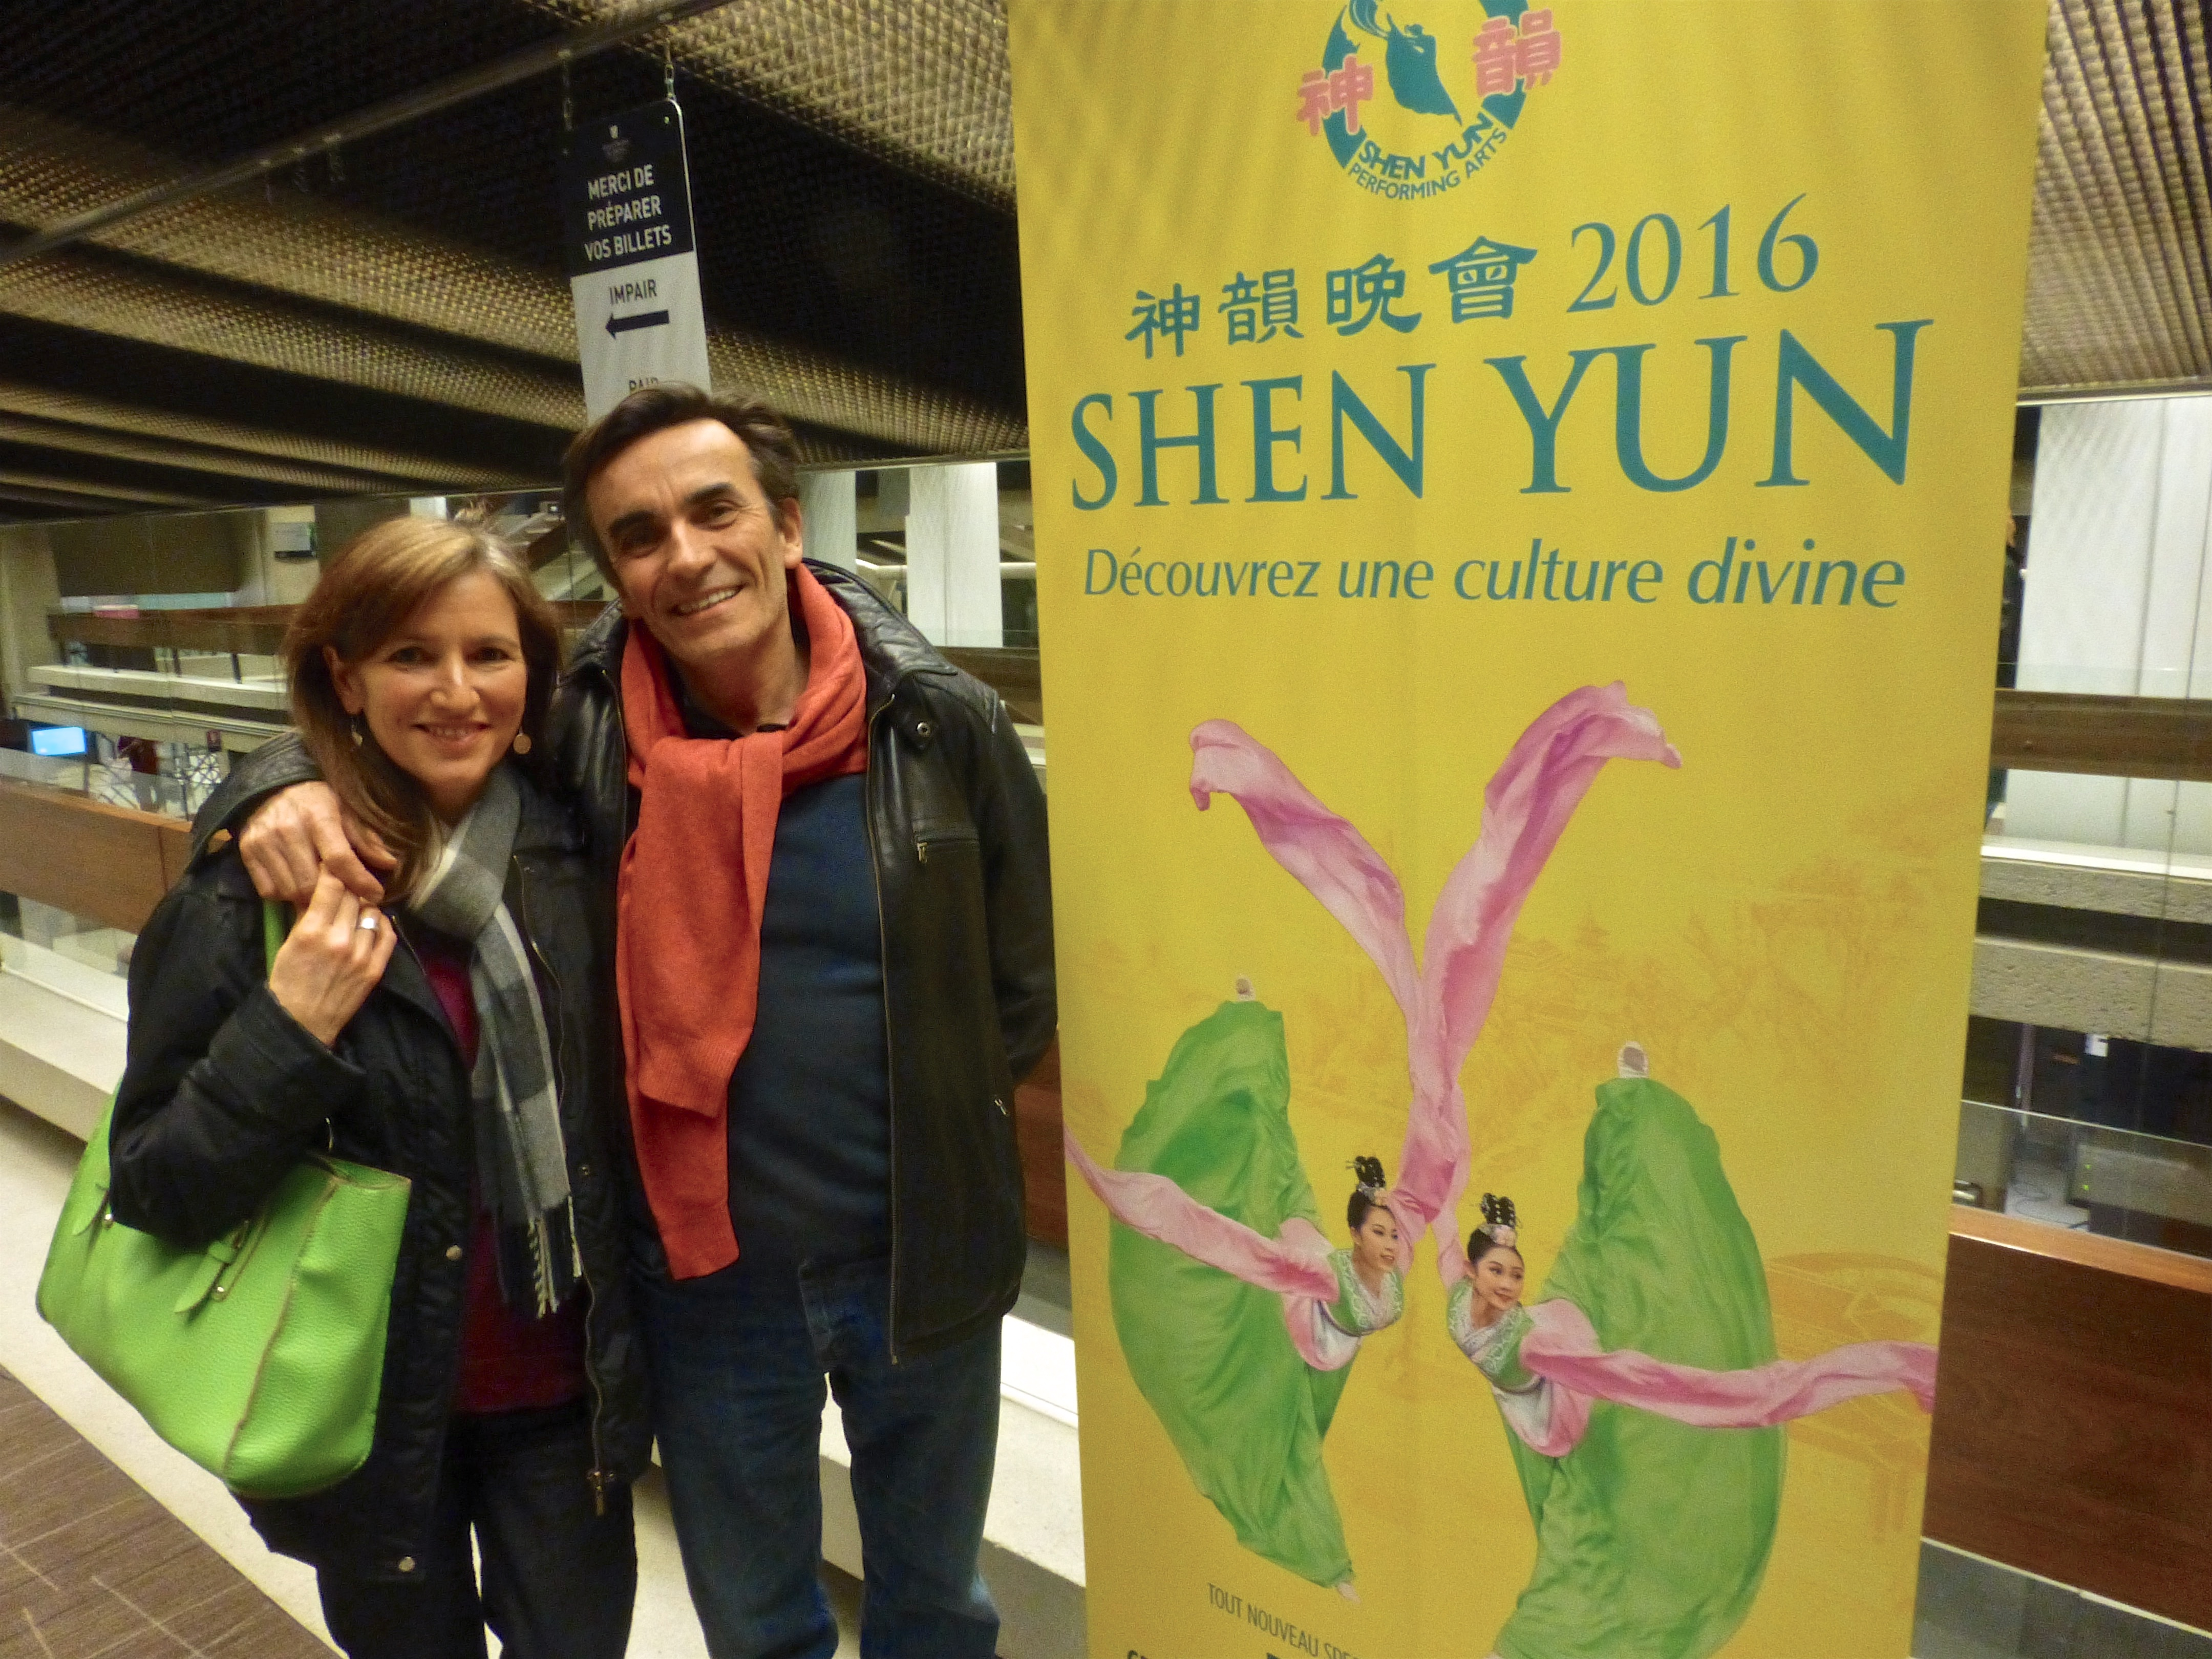 Shen Yun 'Touches on Perfection,' says Journalism Professor